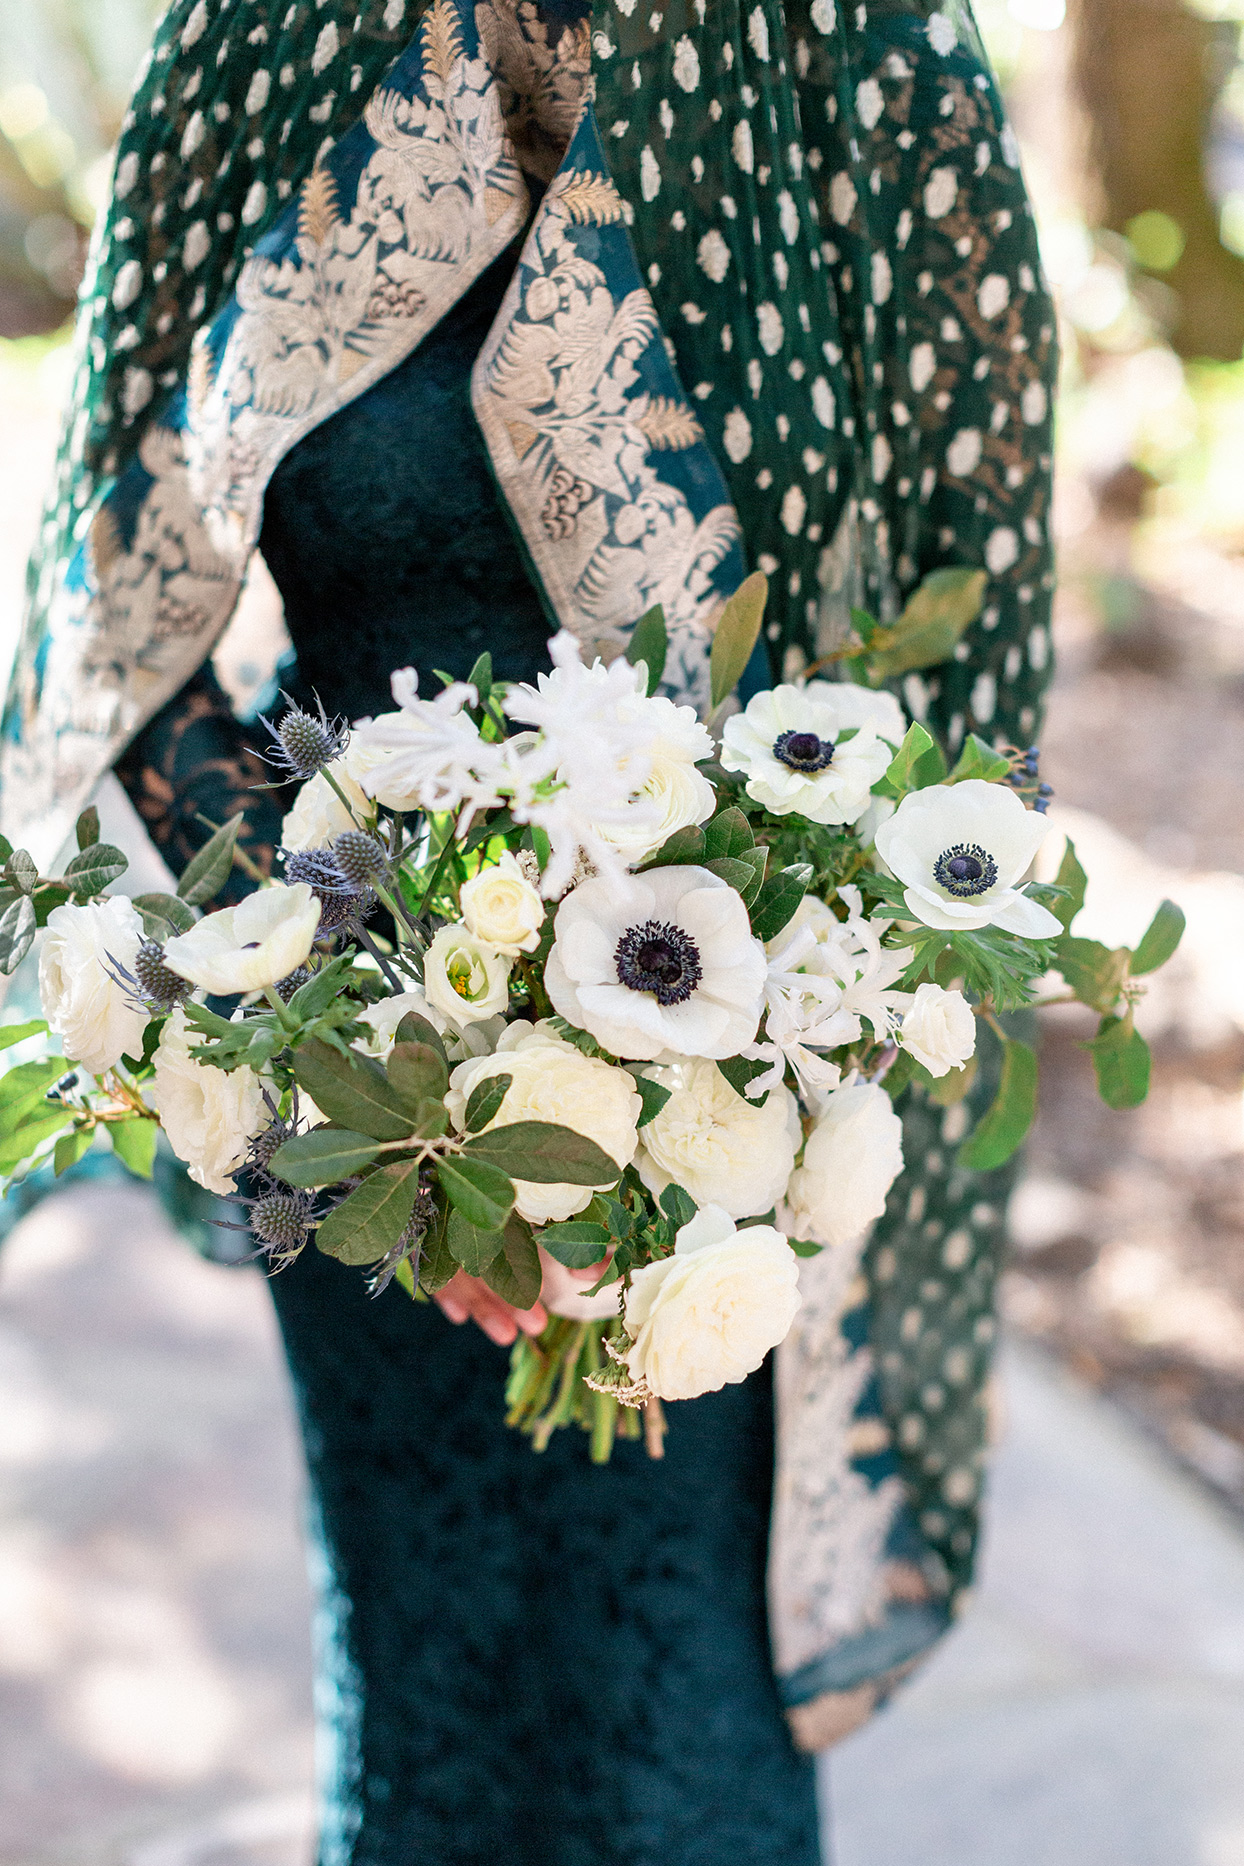 bride in traditional attire holding white and blue wedding bouquet